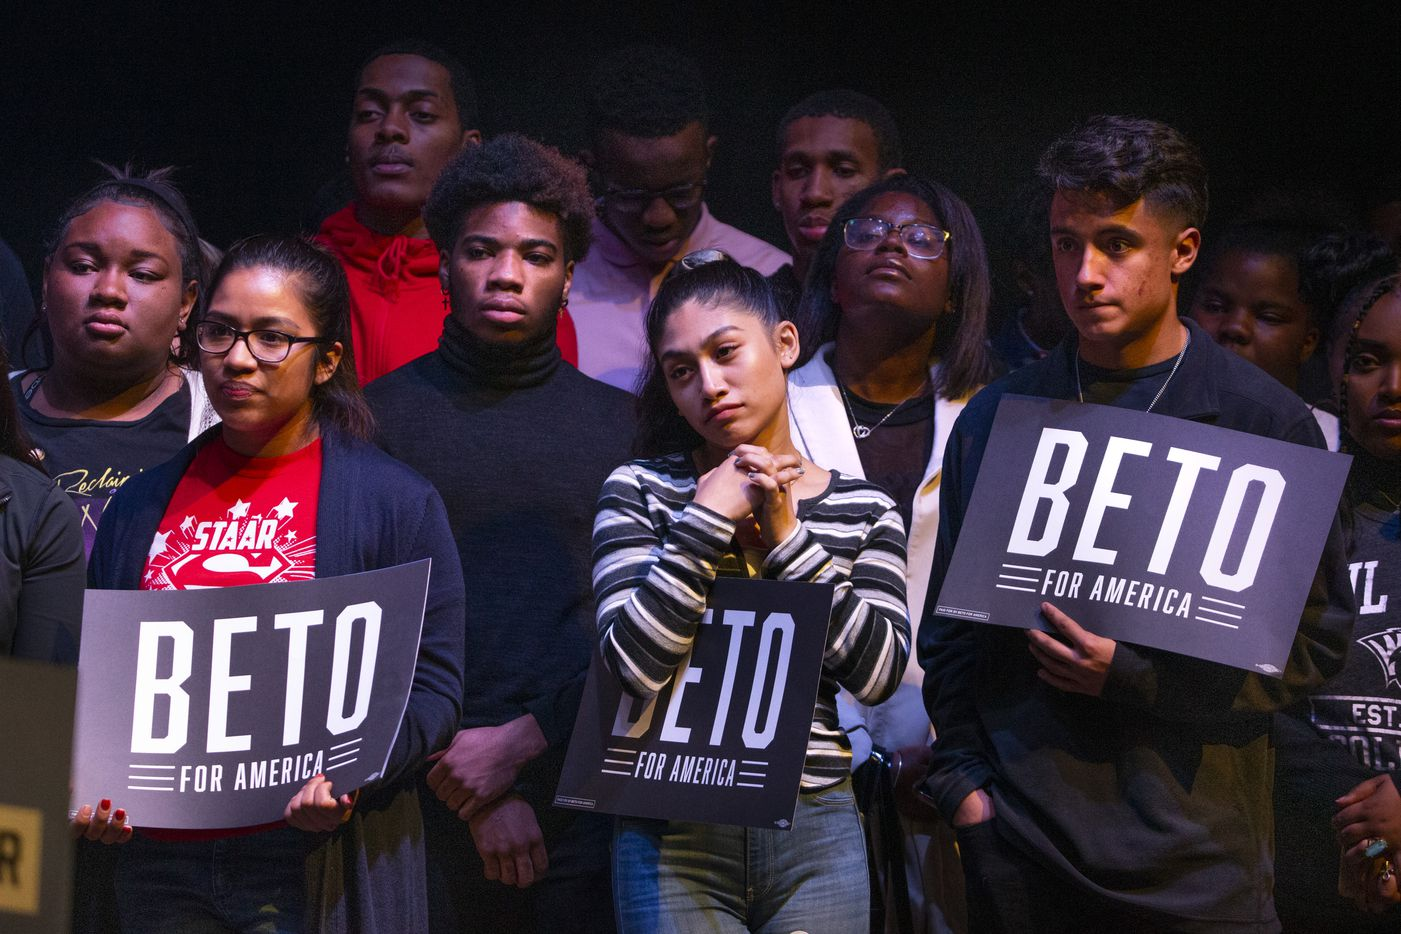 Supporters listen to democratic presidential candidate and former Texas Rep. Beto O'Rourke address the crowd at the Rally Against Fear event hosted by O'Rourke's campaign in the Theatre at Grand Prairie on Thursday, Oct. 17, 2019, in Grand Prairie, Texas. O'Rourke hosted the event in response to President Donald Trump's rally in downtown Dallas at the same time.